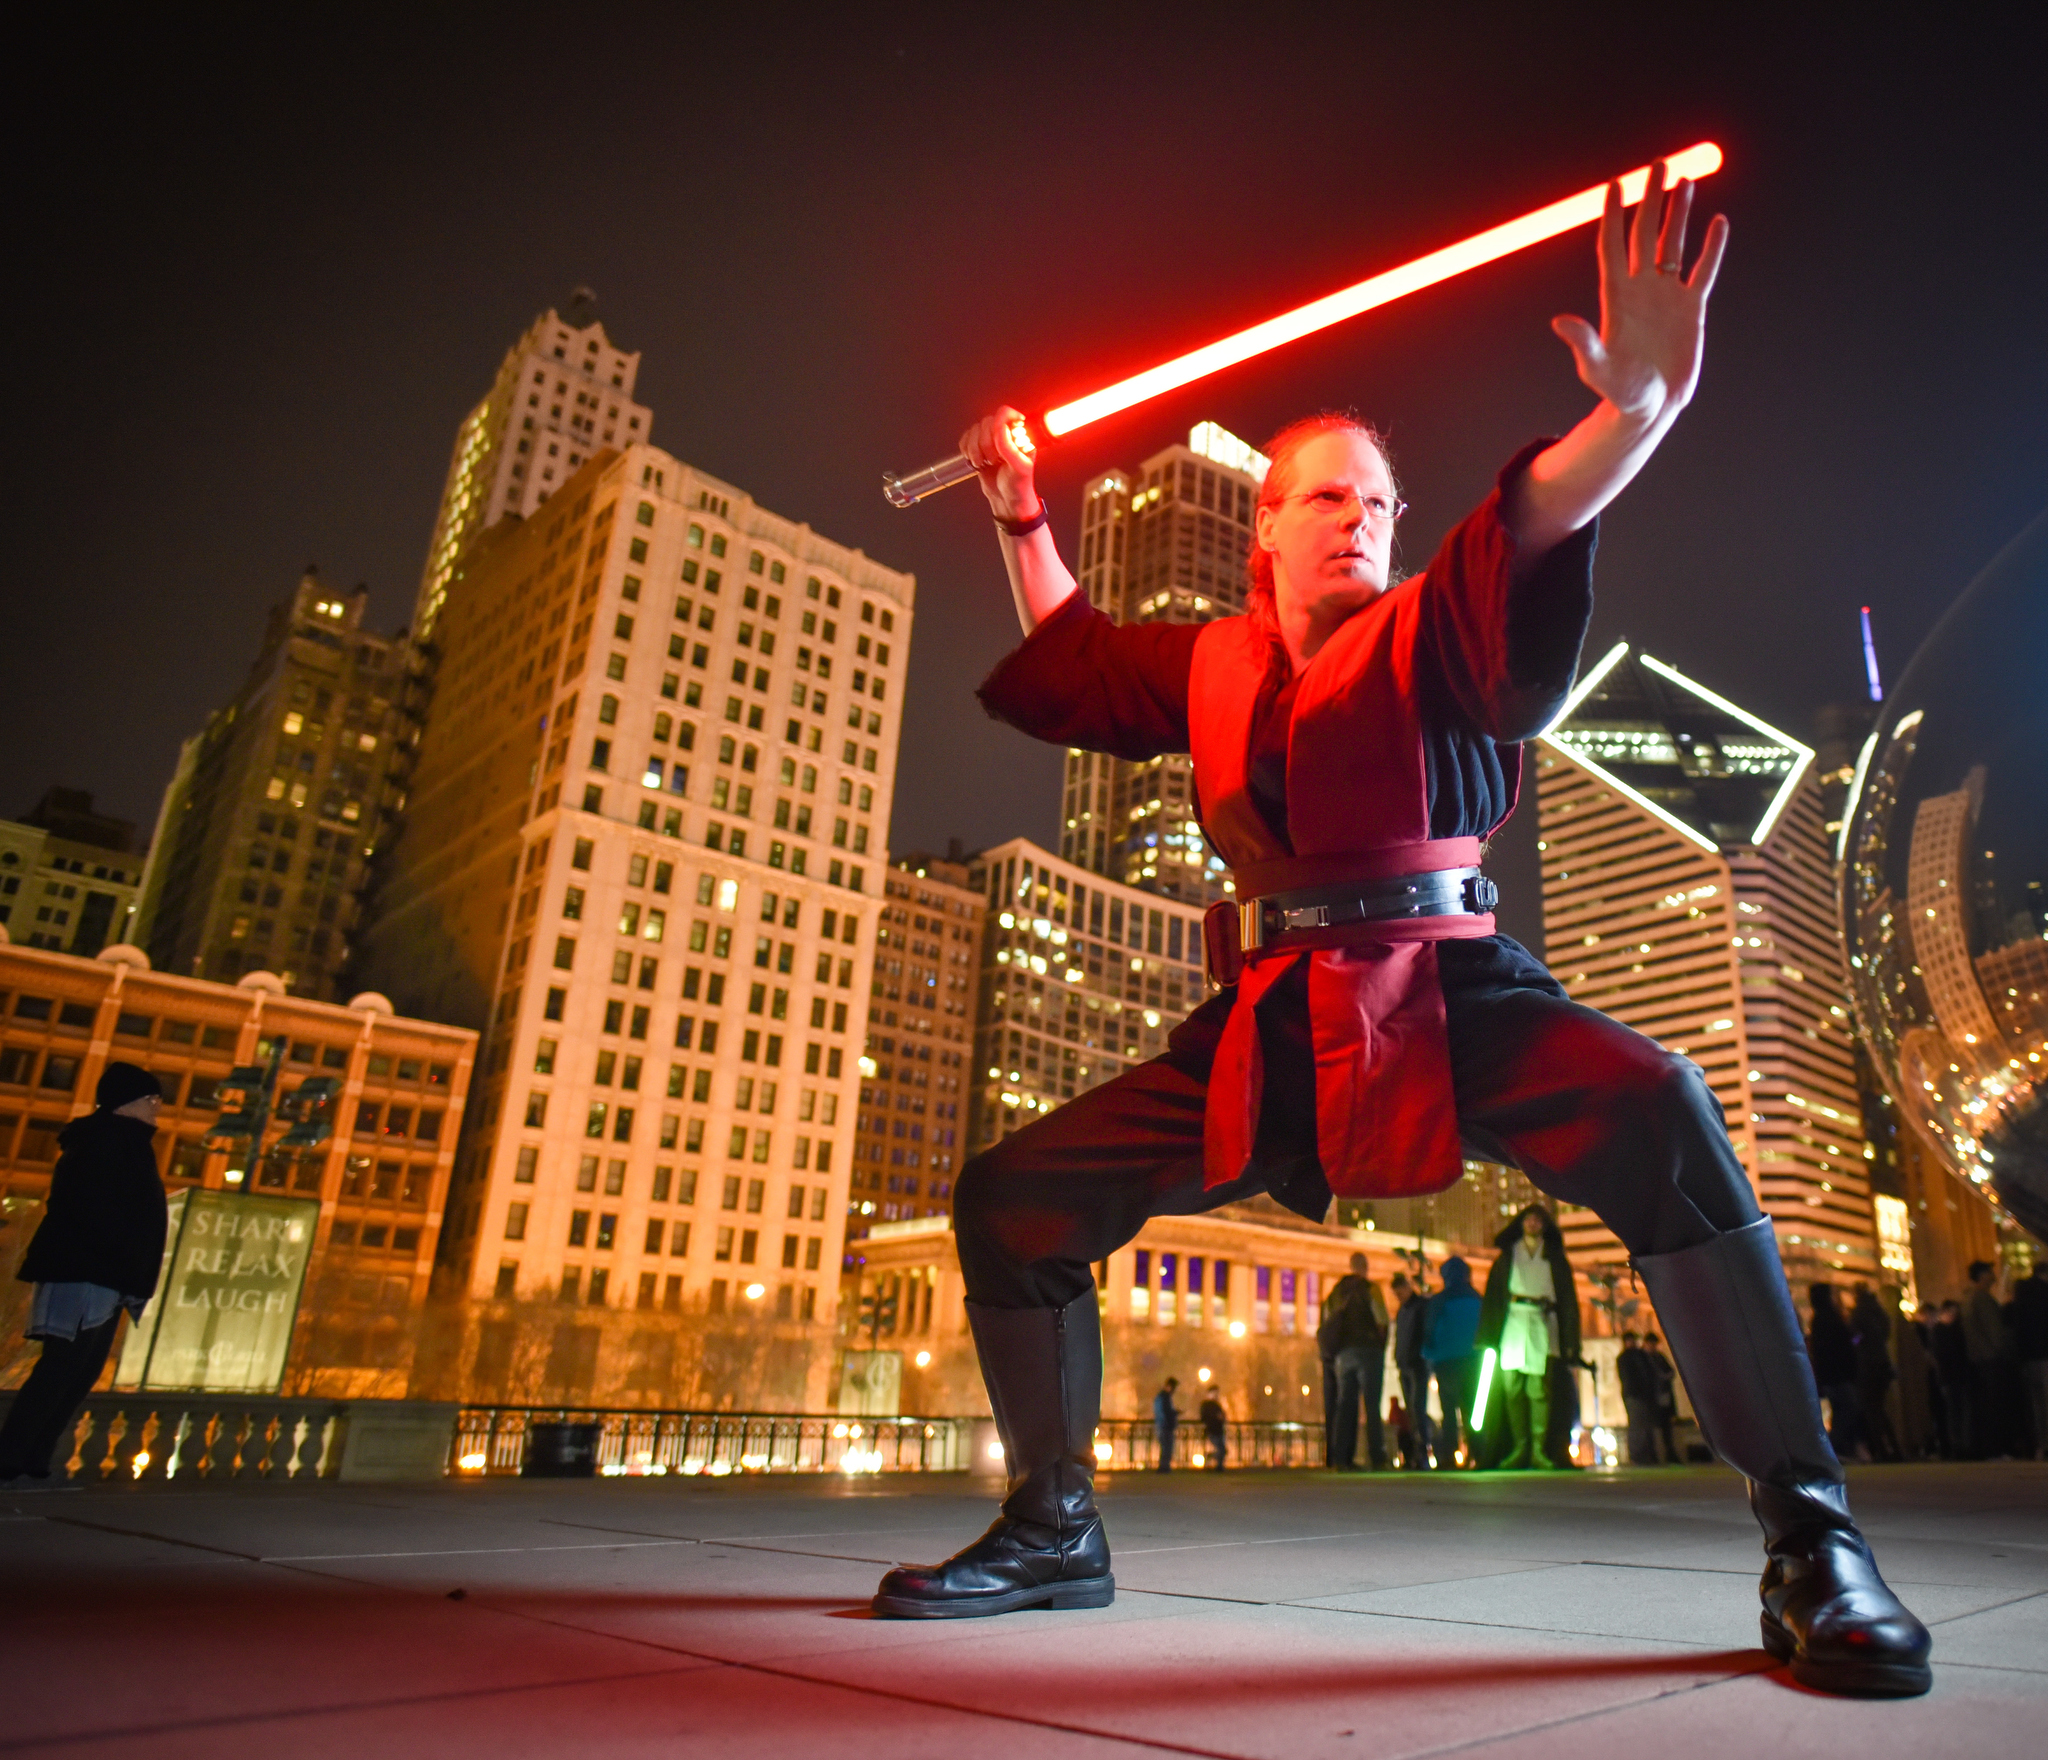 2019.04.14 - Star Wars Celebration Chicago 288865.JPG